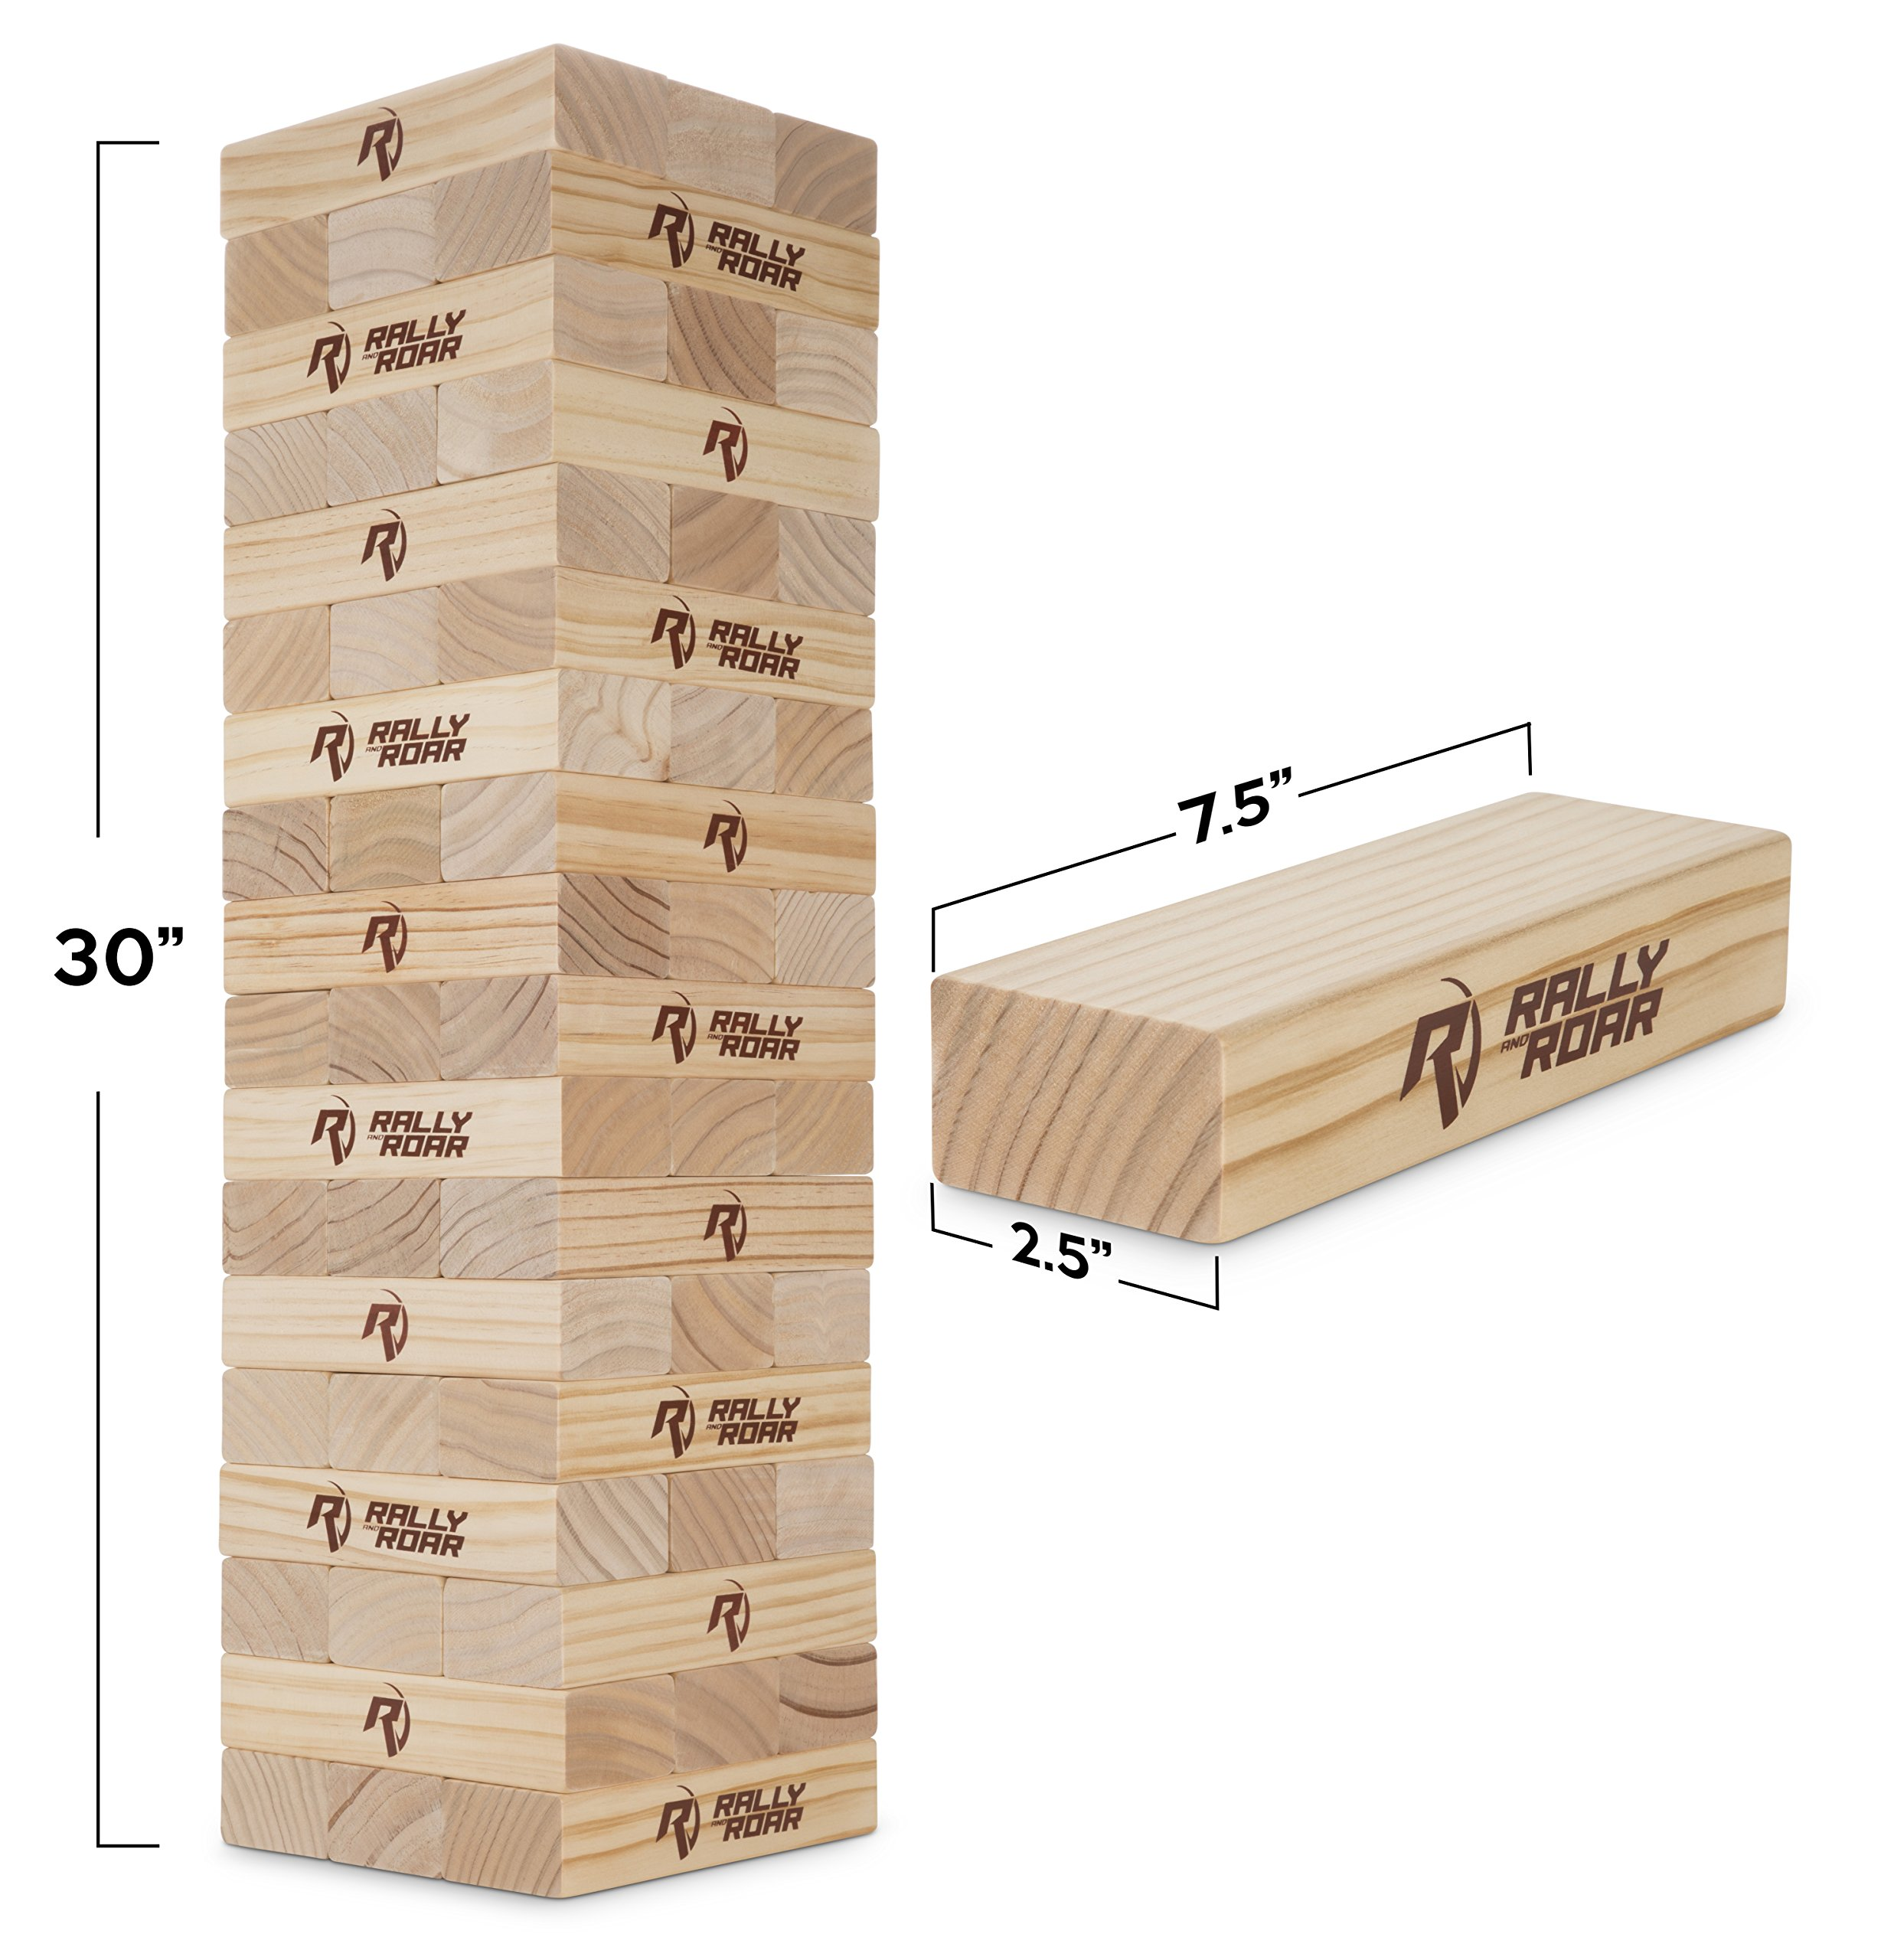 Rally and Roar Toppling Tower Giant Tumbling Timbers Game 2.5 feet Tall (Build to Over 5 feet)– Classic Wood Version - for Adults, Kids, Family – Stacking Blocks Set w/Canvas Bag by Rally and Roar (Image #4)